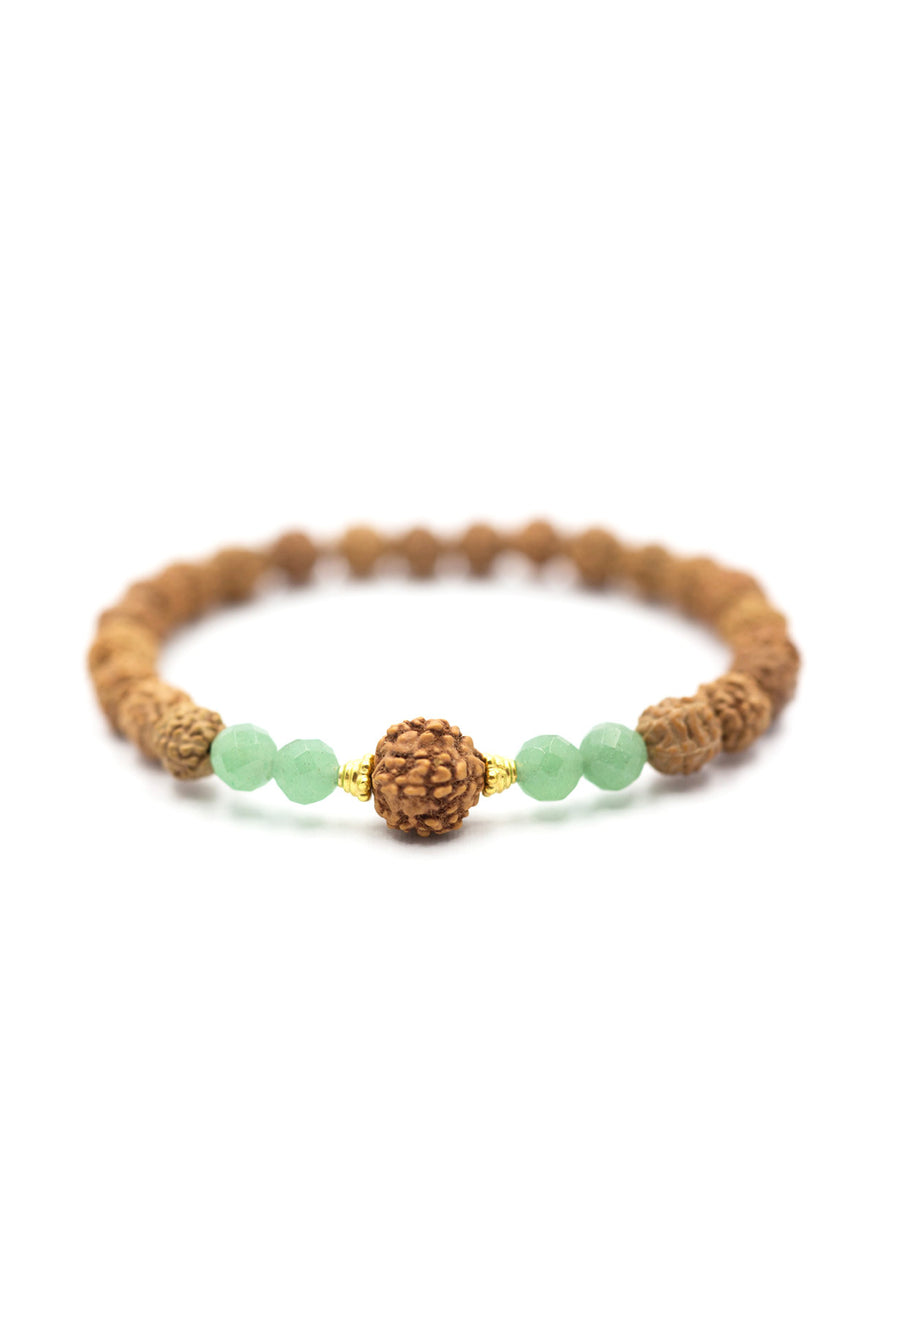 Anahata / Heart or 4th Chakra Bracelet - Bali Malas